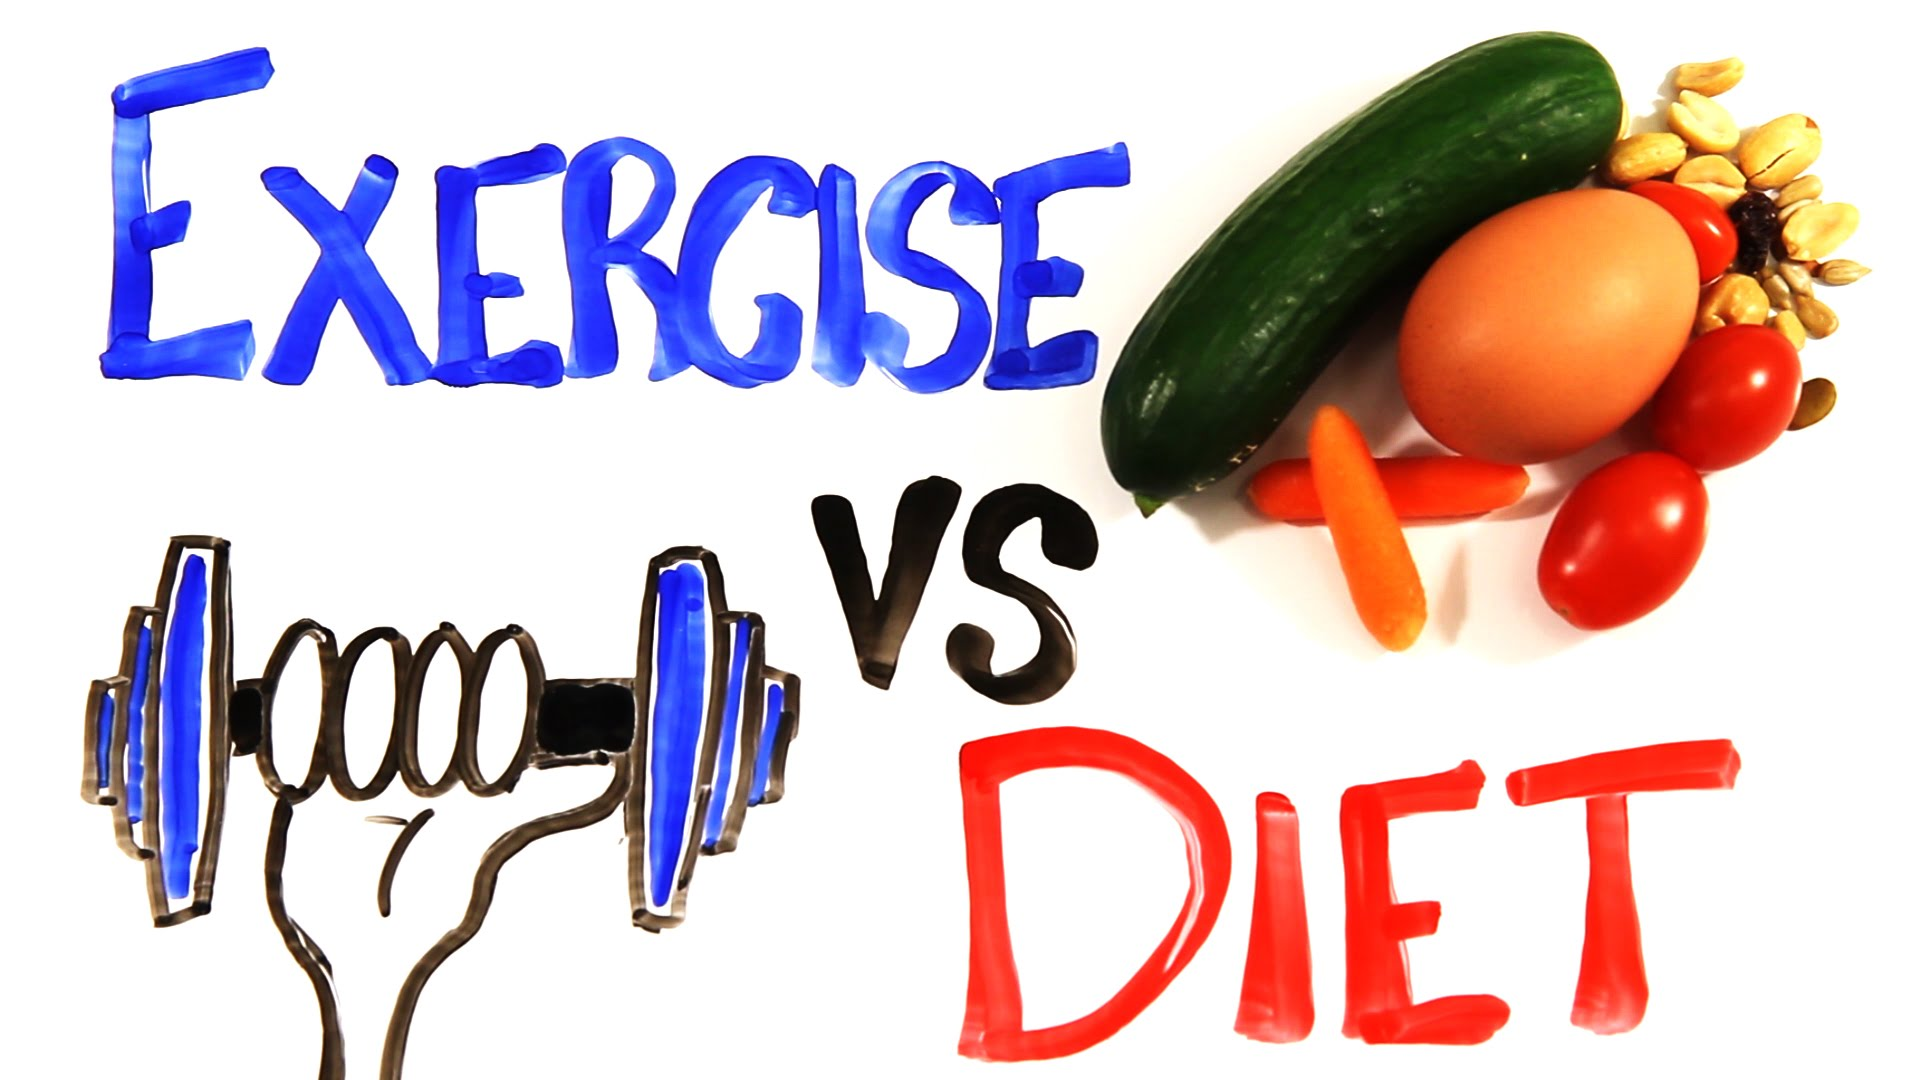 why diet and exercise